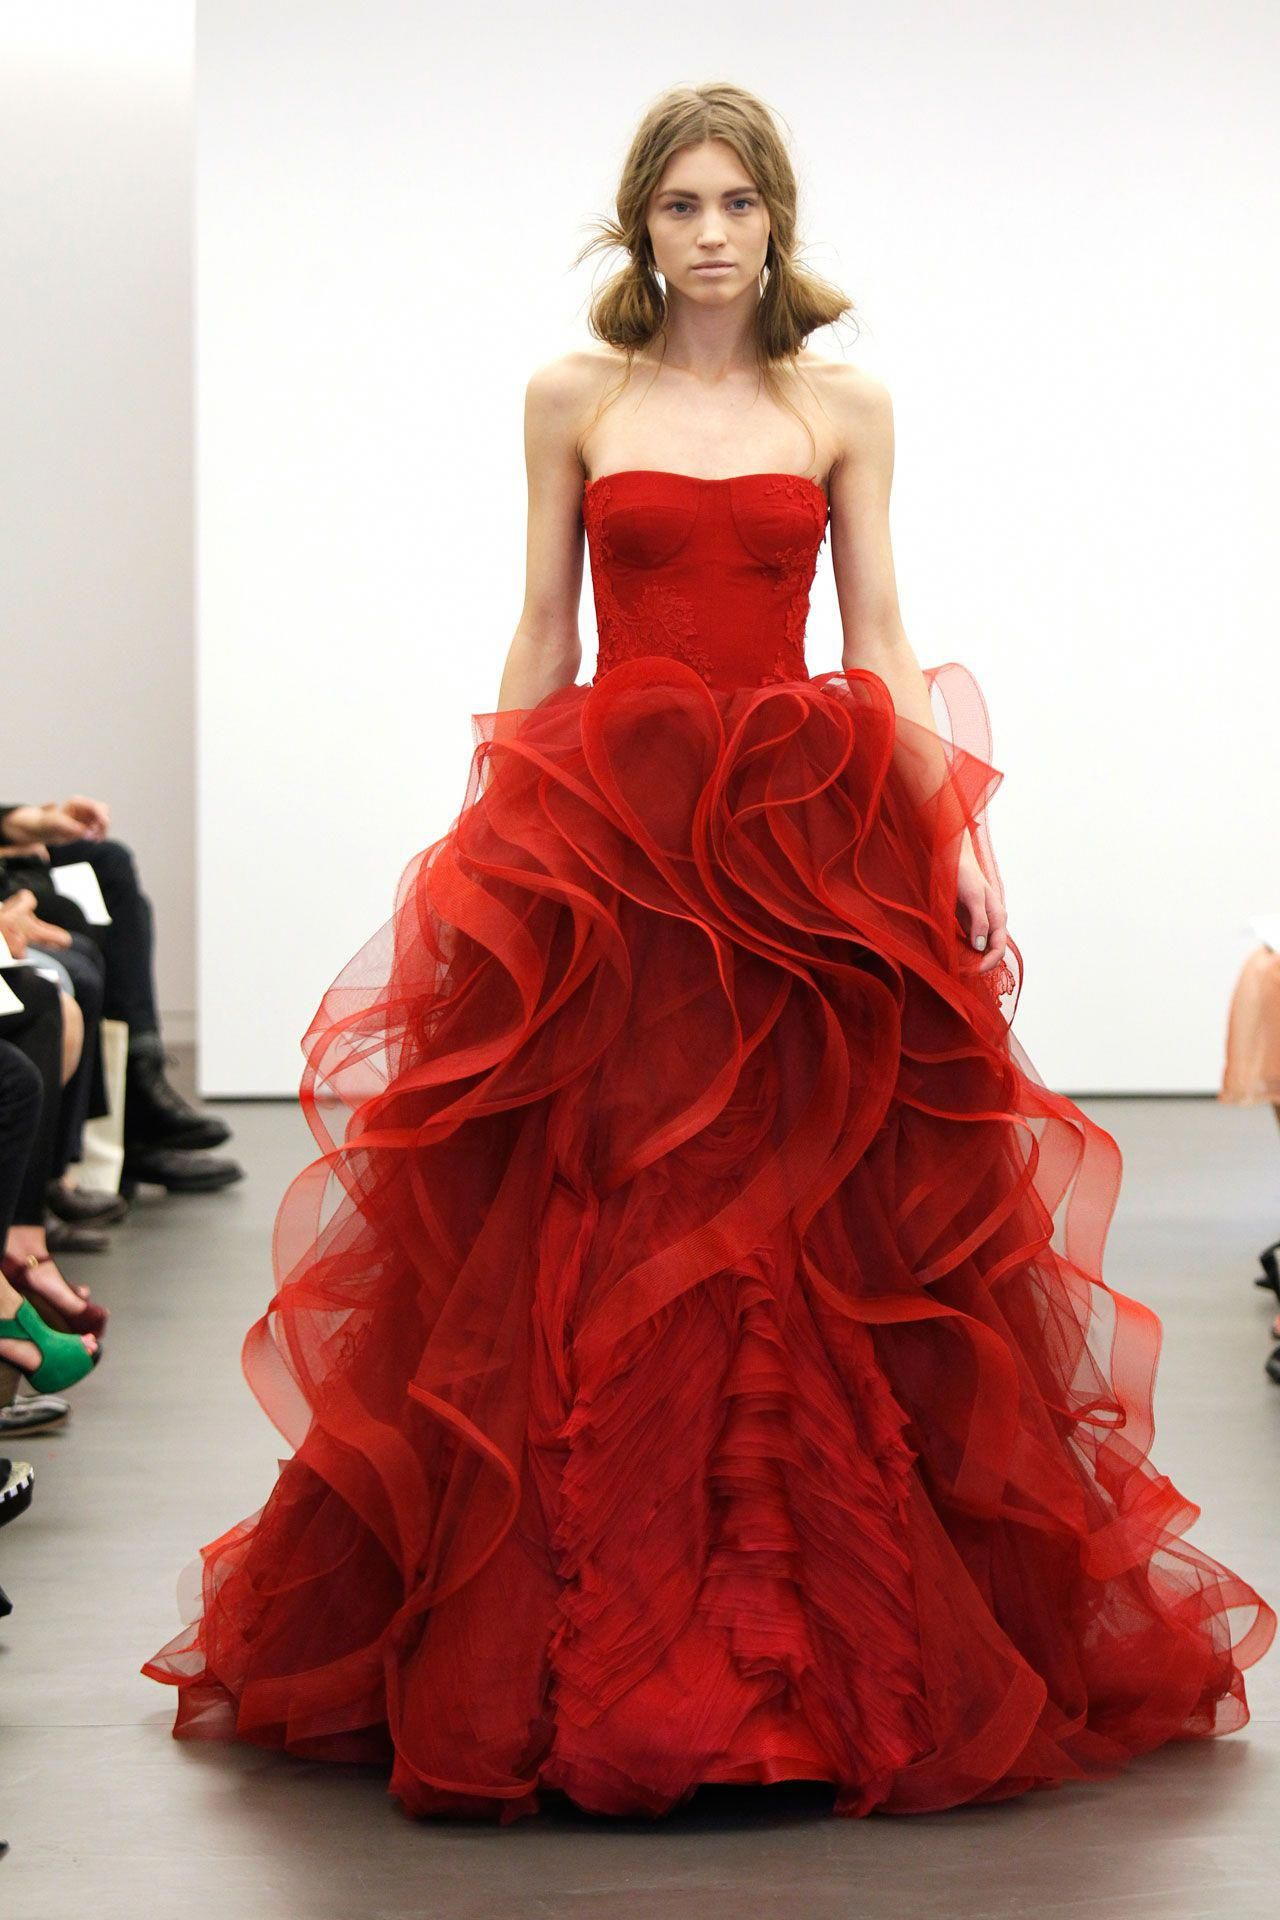 3a68e96b28 I would absolutely wear a red dress-love the ruffles-Incredible red wedding  dress